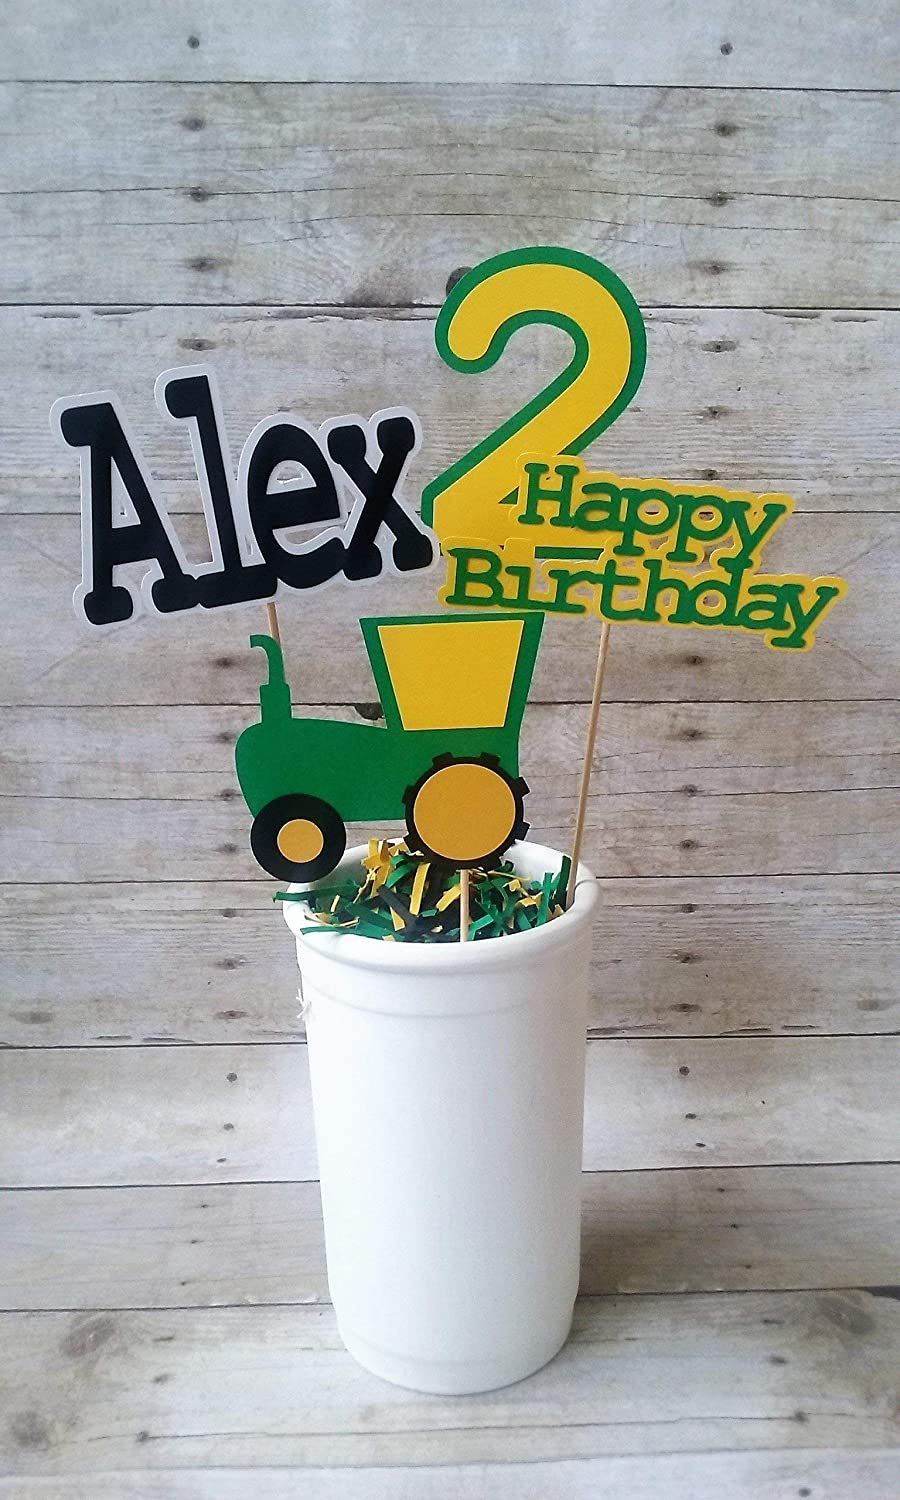 Tractor Birthday Centerpiece | tractor party | boys birthday | personalized | john deere | farm decorations